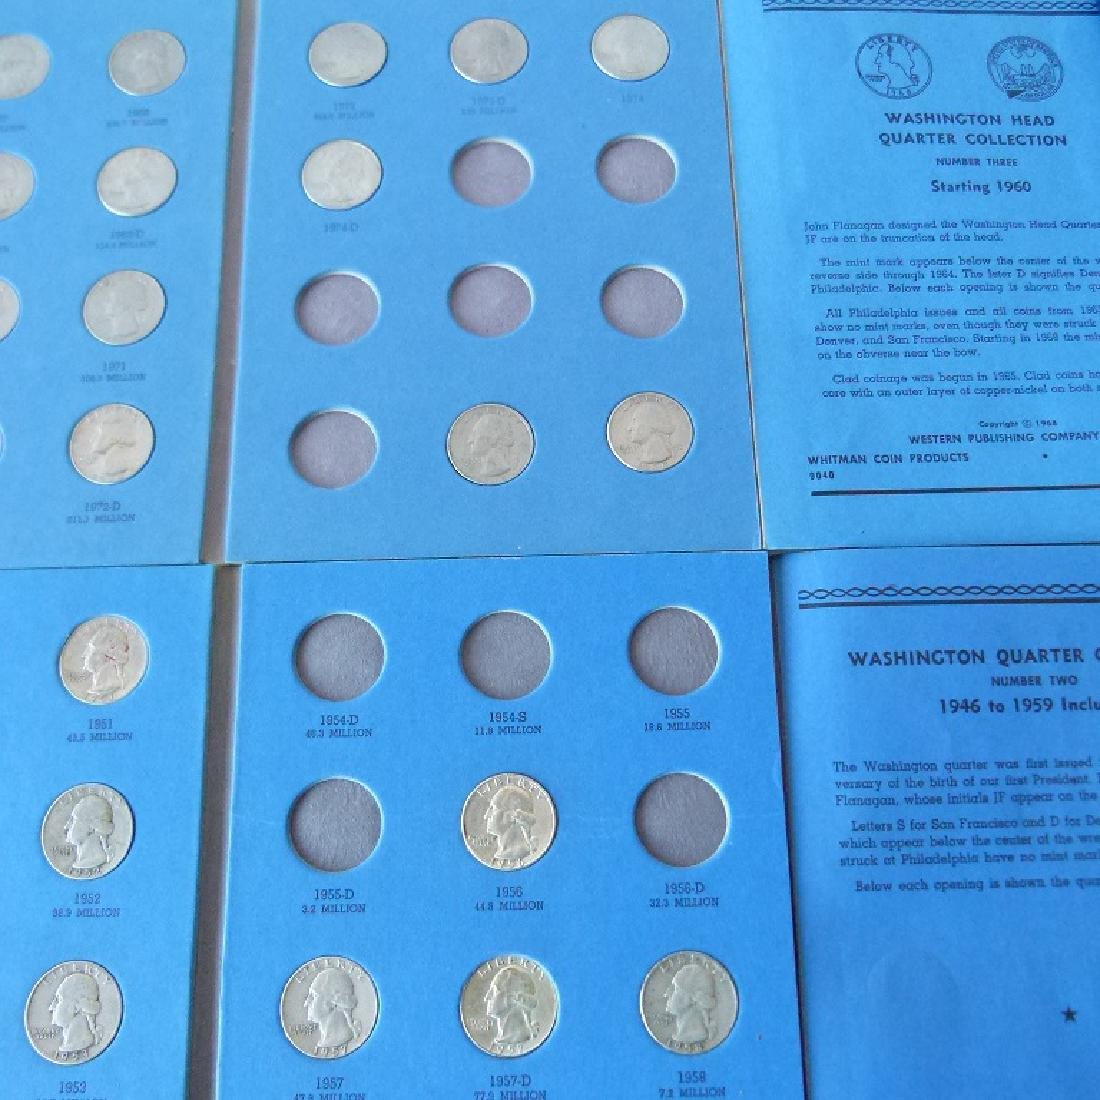 LOT ASSORTED US COIN BOOKS - 8